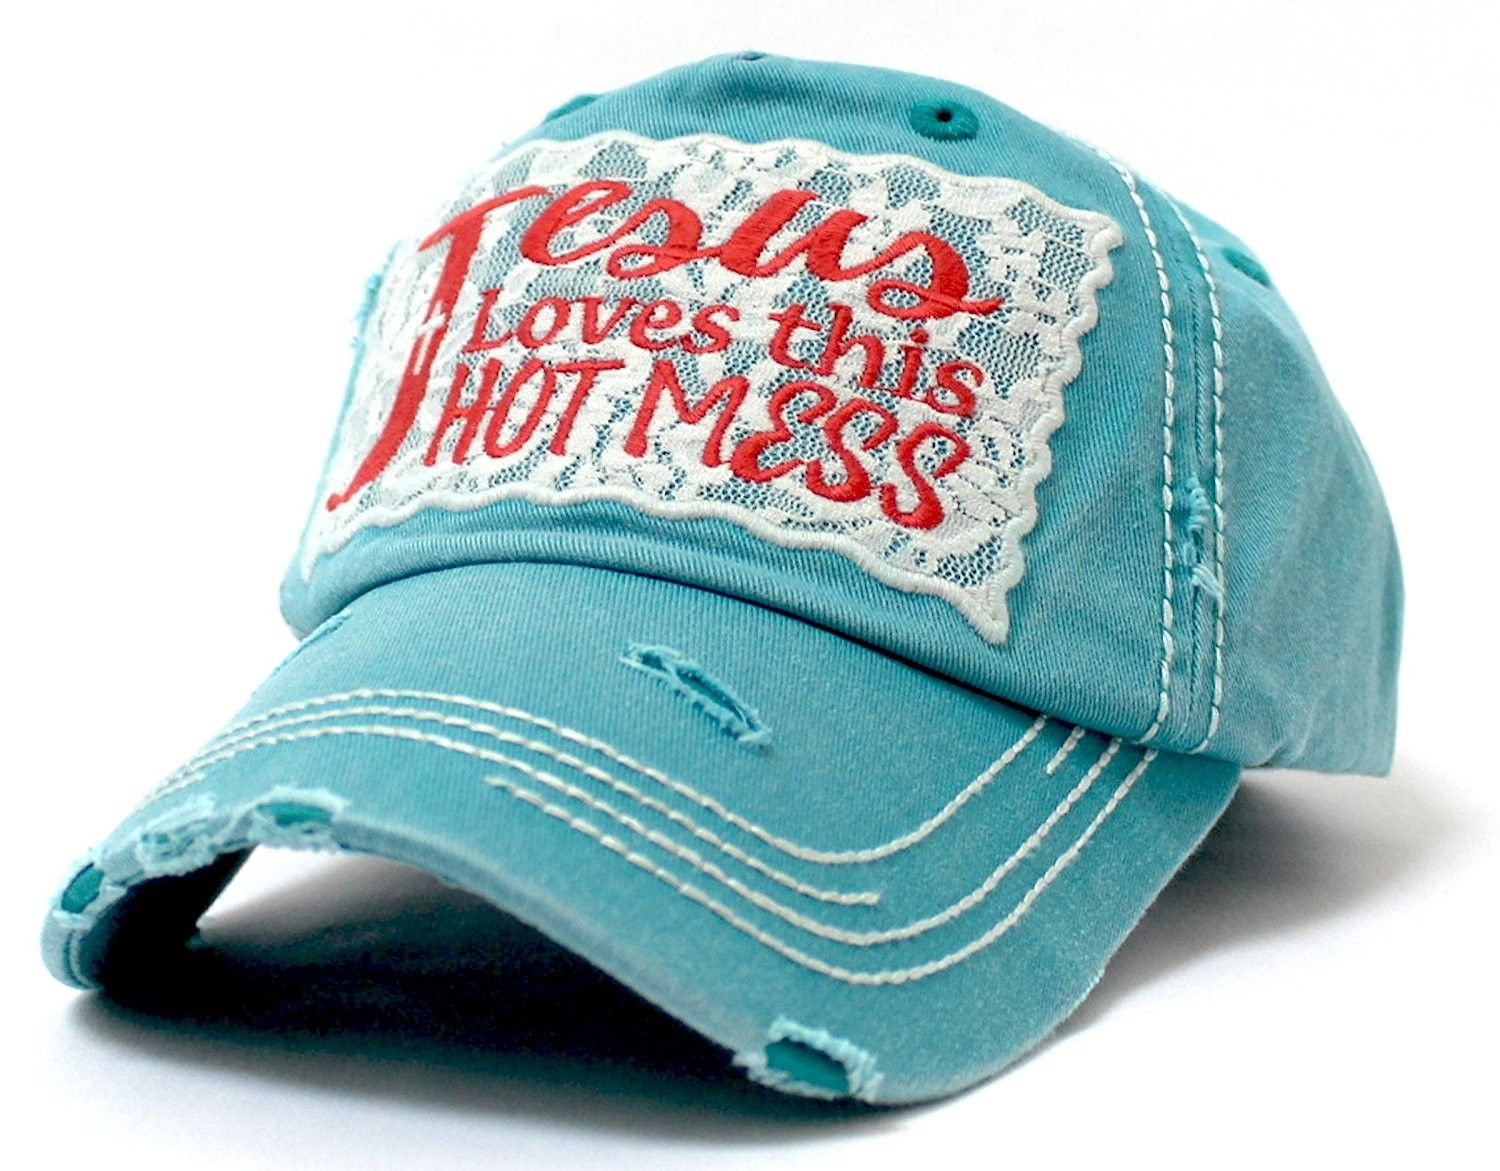 Lace Jesus Loves This Hot Mess Embroidery Patch Vintage Cap Turquoise Cv185d48xck Embroidery Patches Vintage Cap Embroidery Shoes Diy